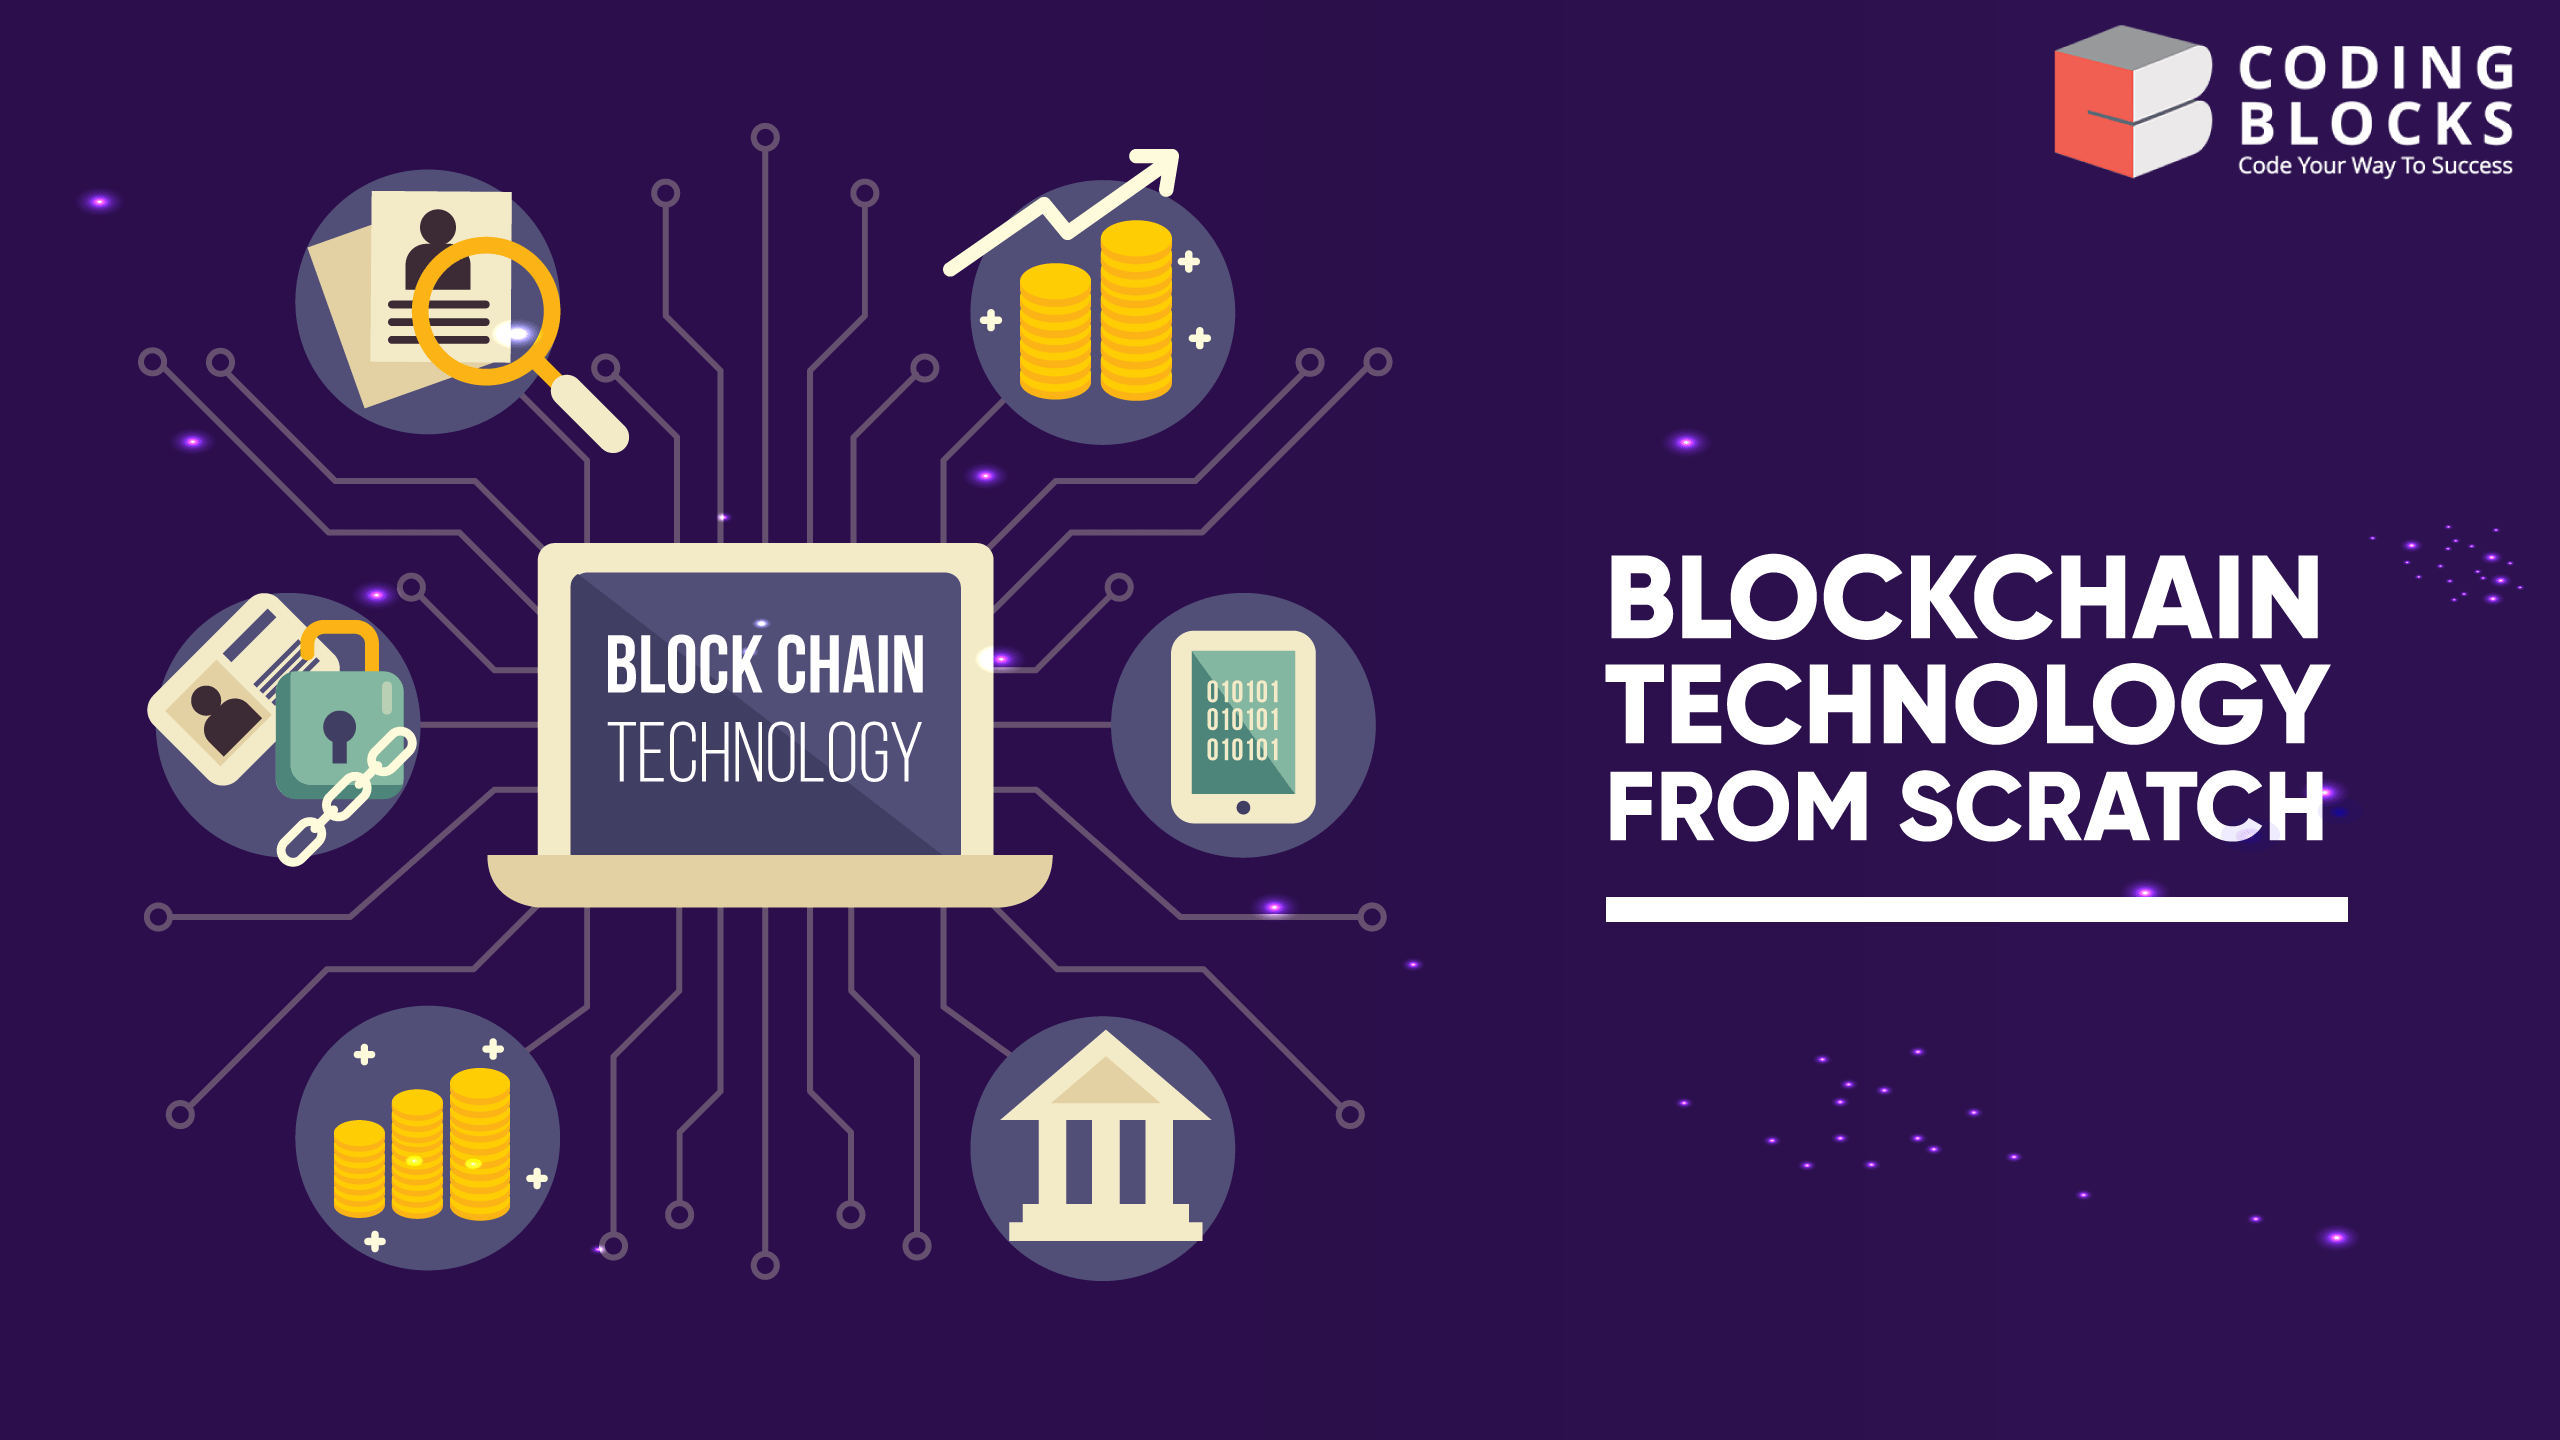 Blockchain Technology From Scratch